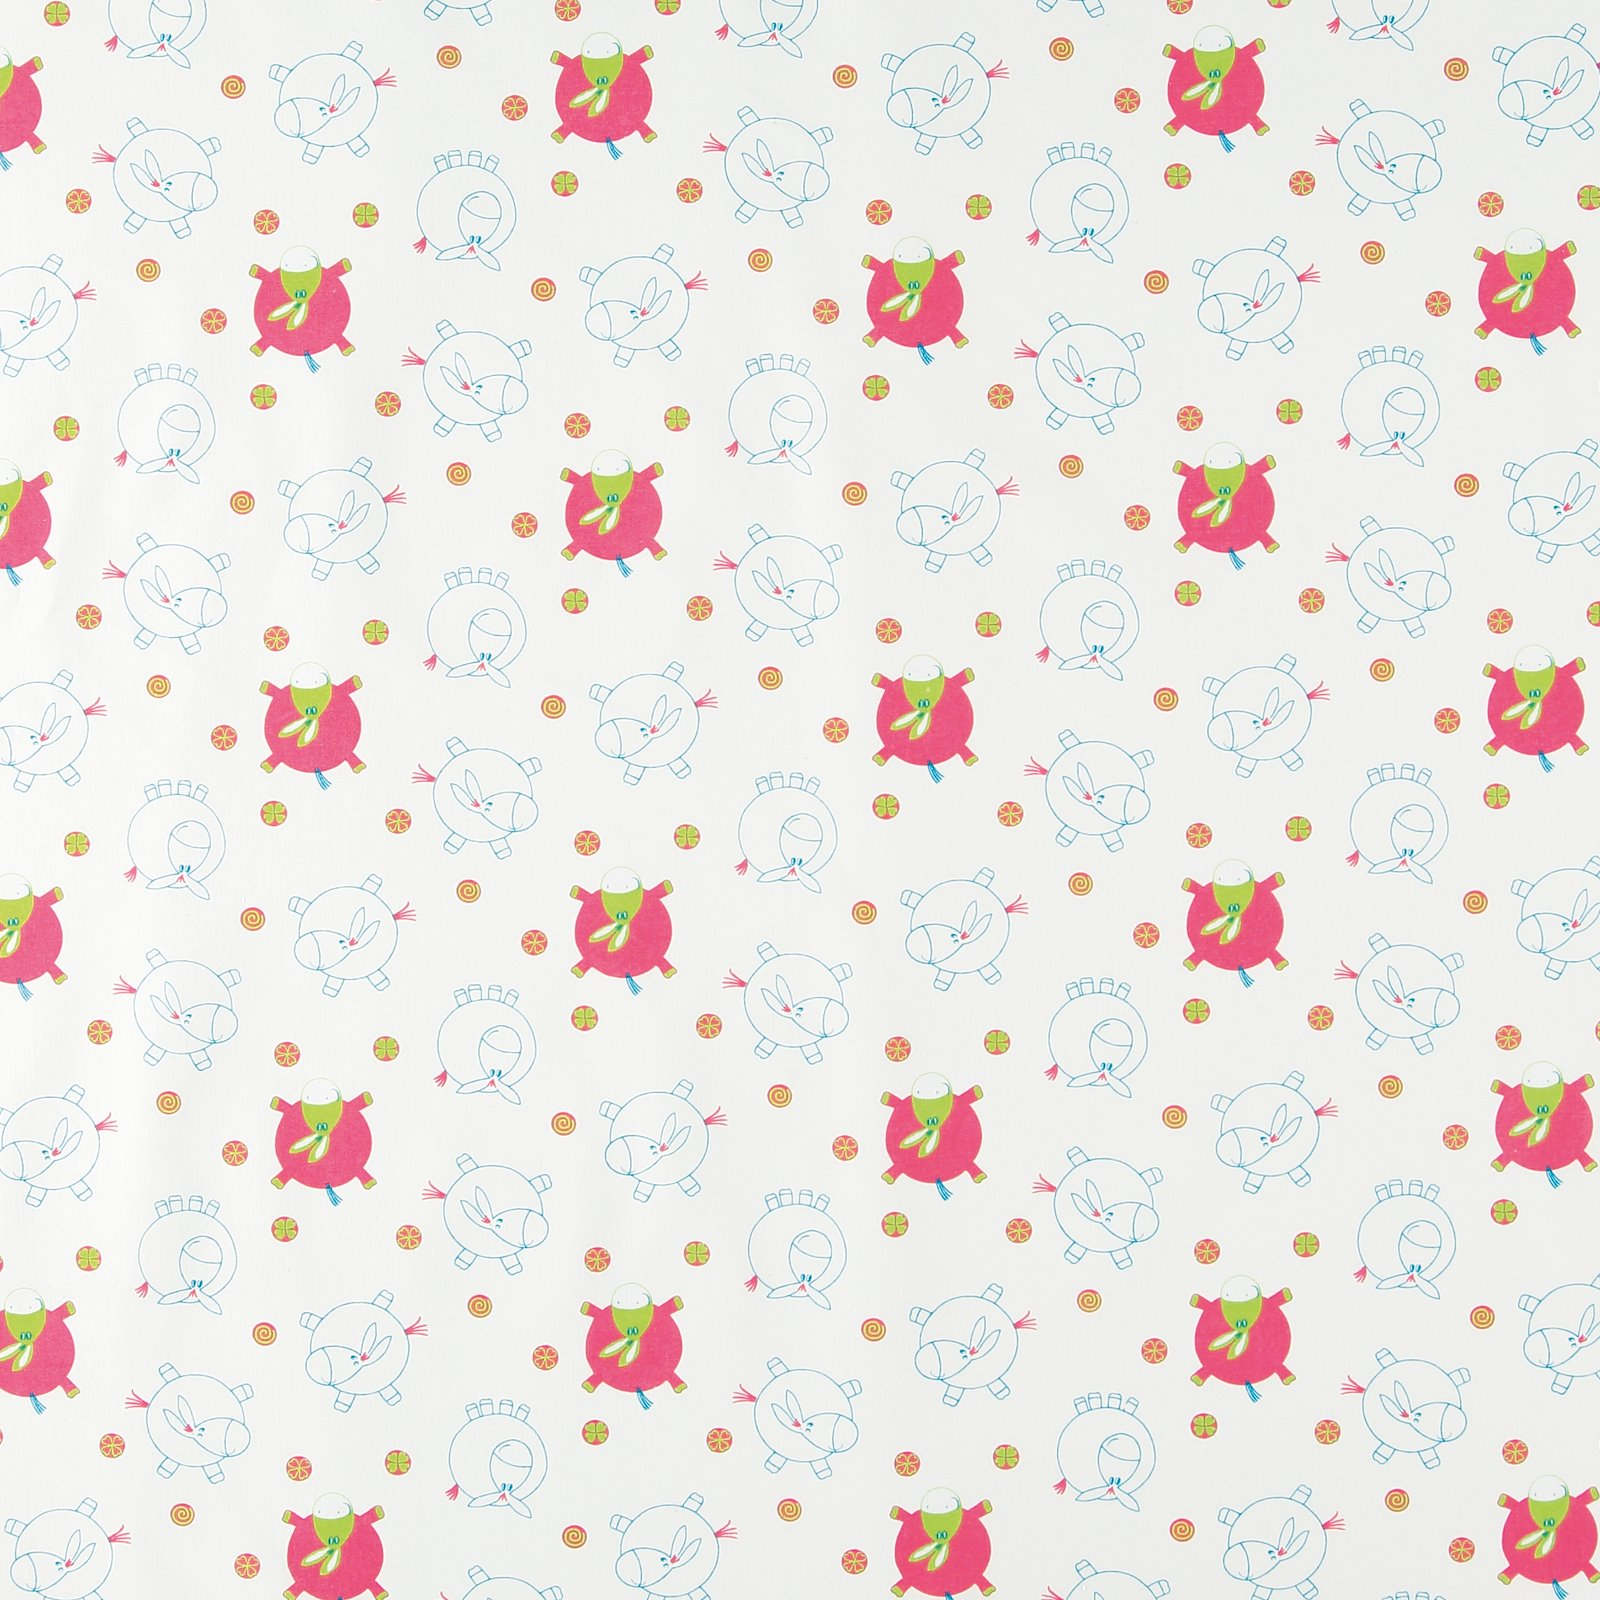 Cotton cream with pink donkey 780466_pack_sp